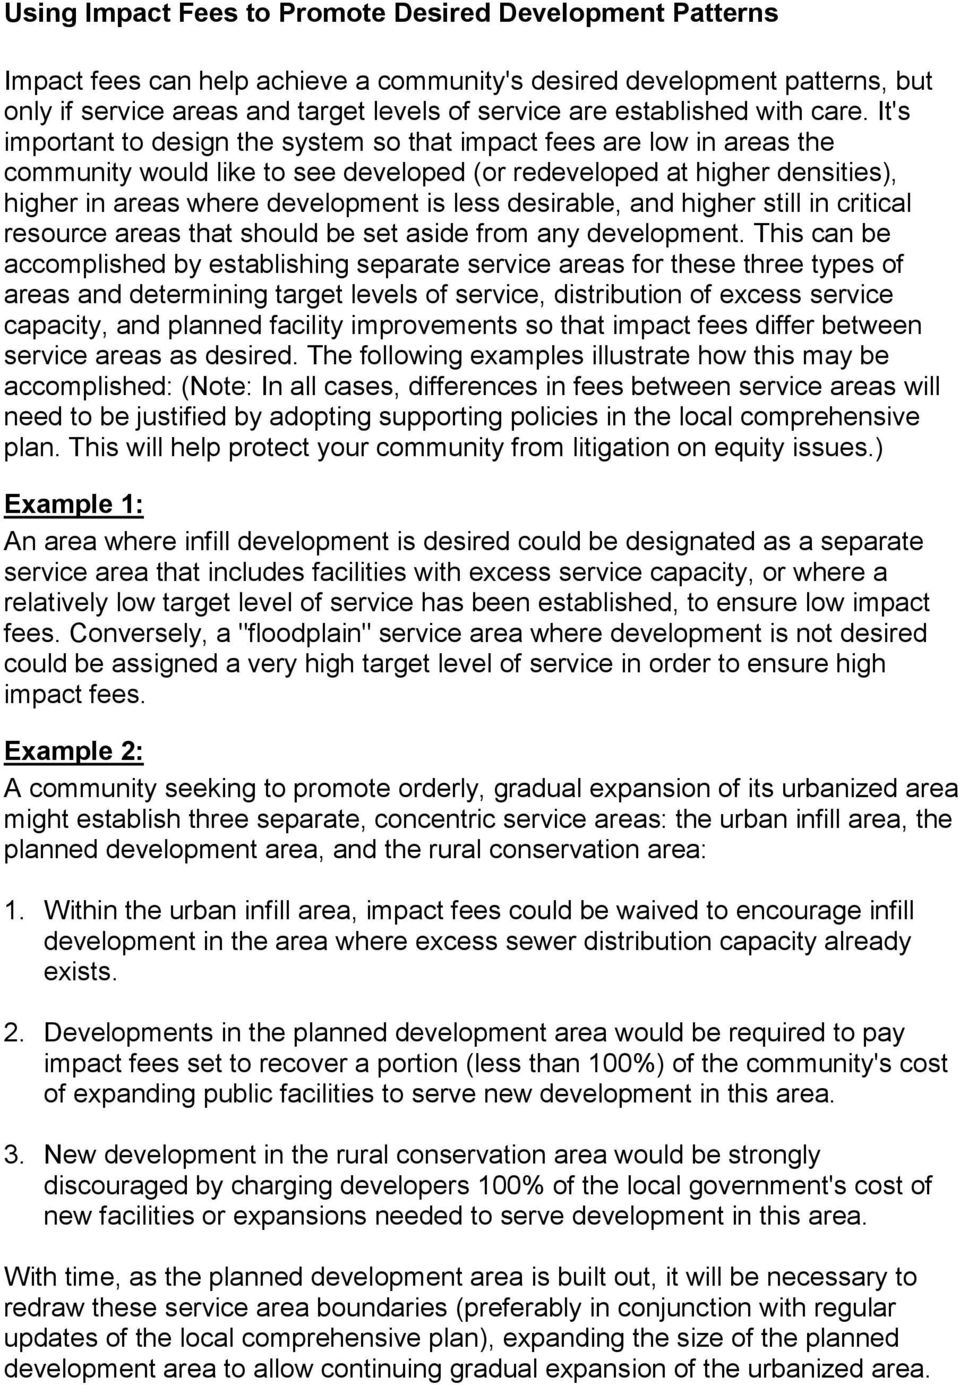 It's important to design the system so that impact fees are low in areas the community would like to see developed (or redeveloped at higher densities), higher in areas where development is less